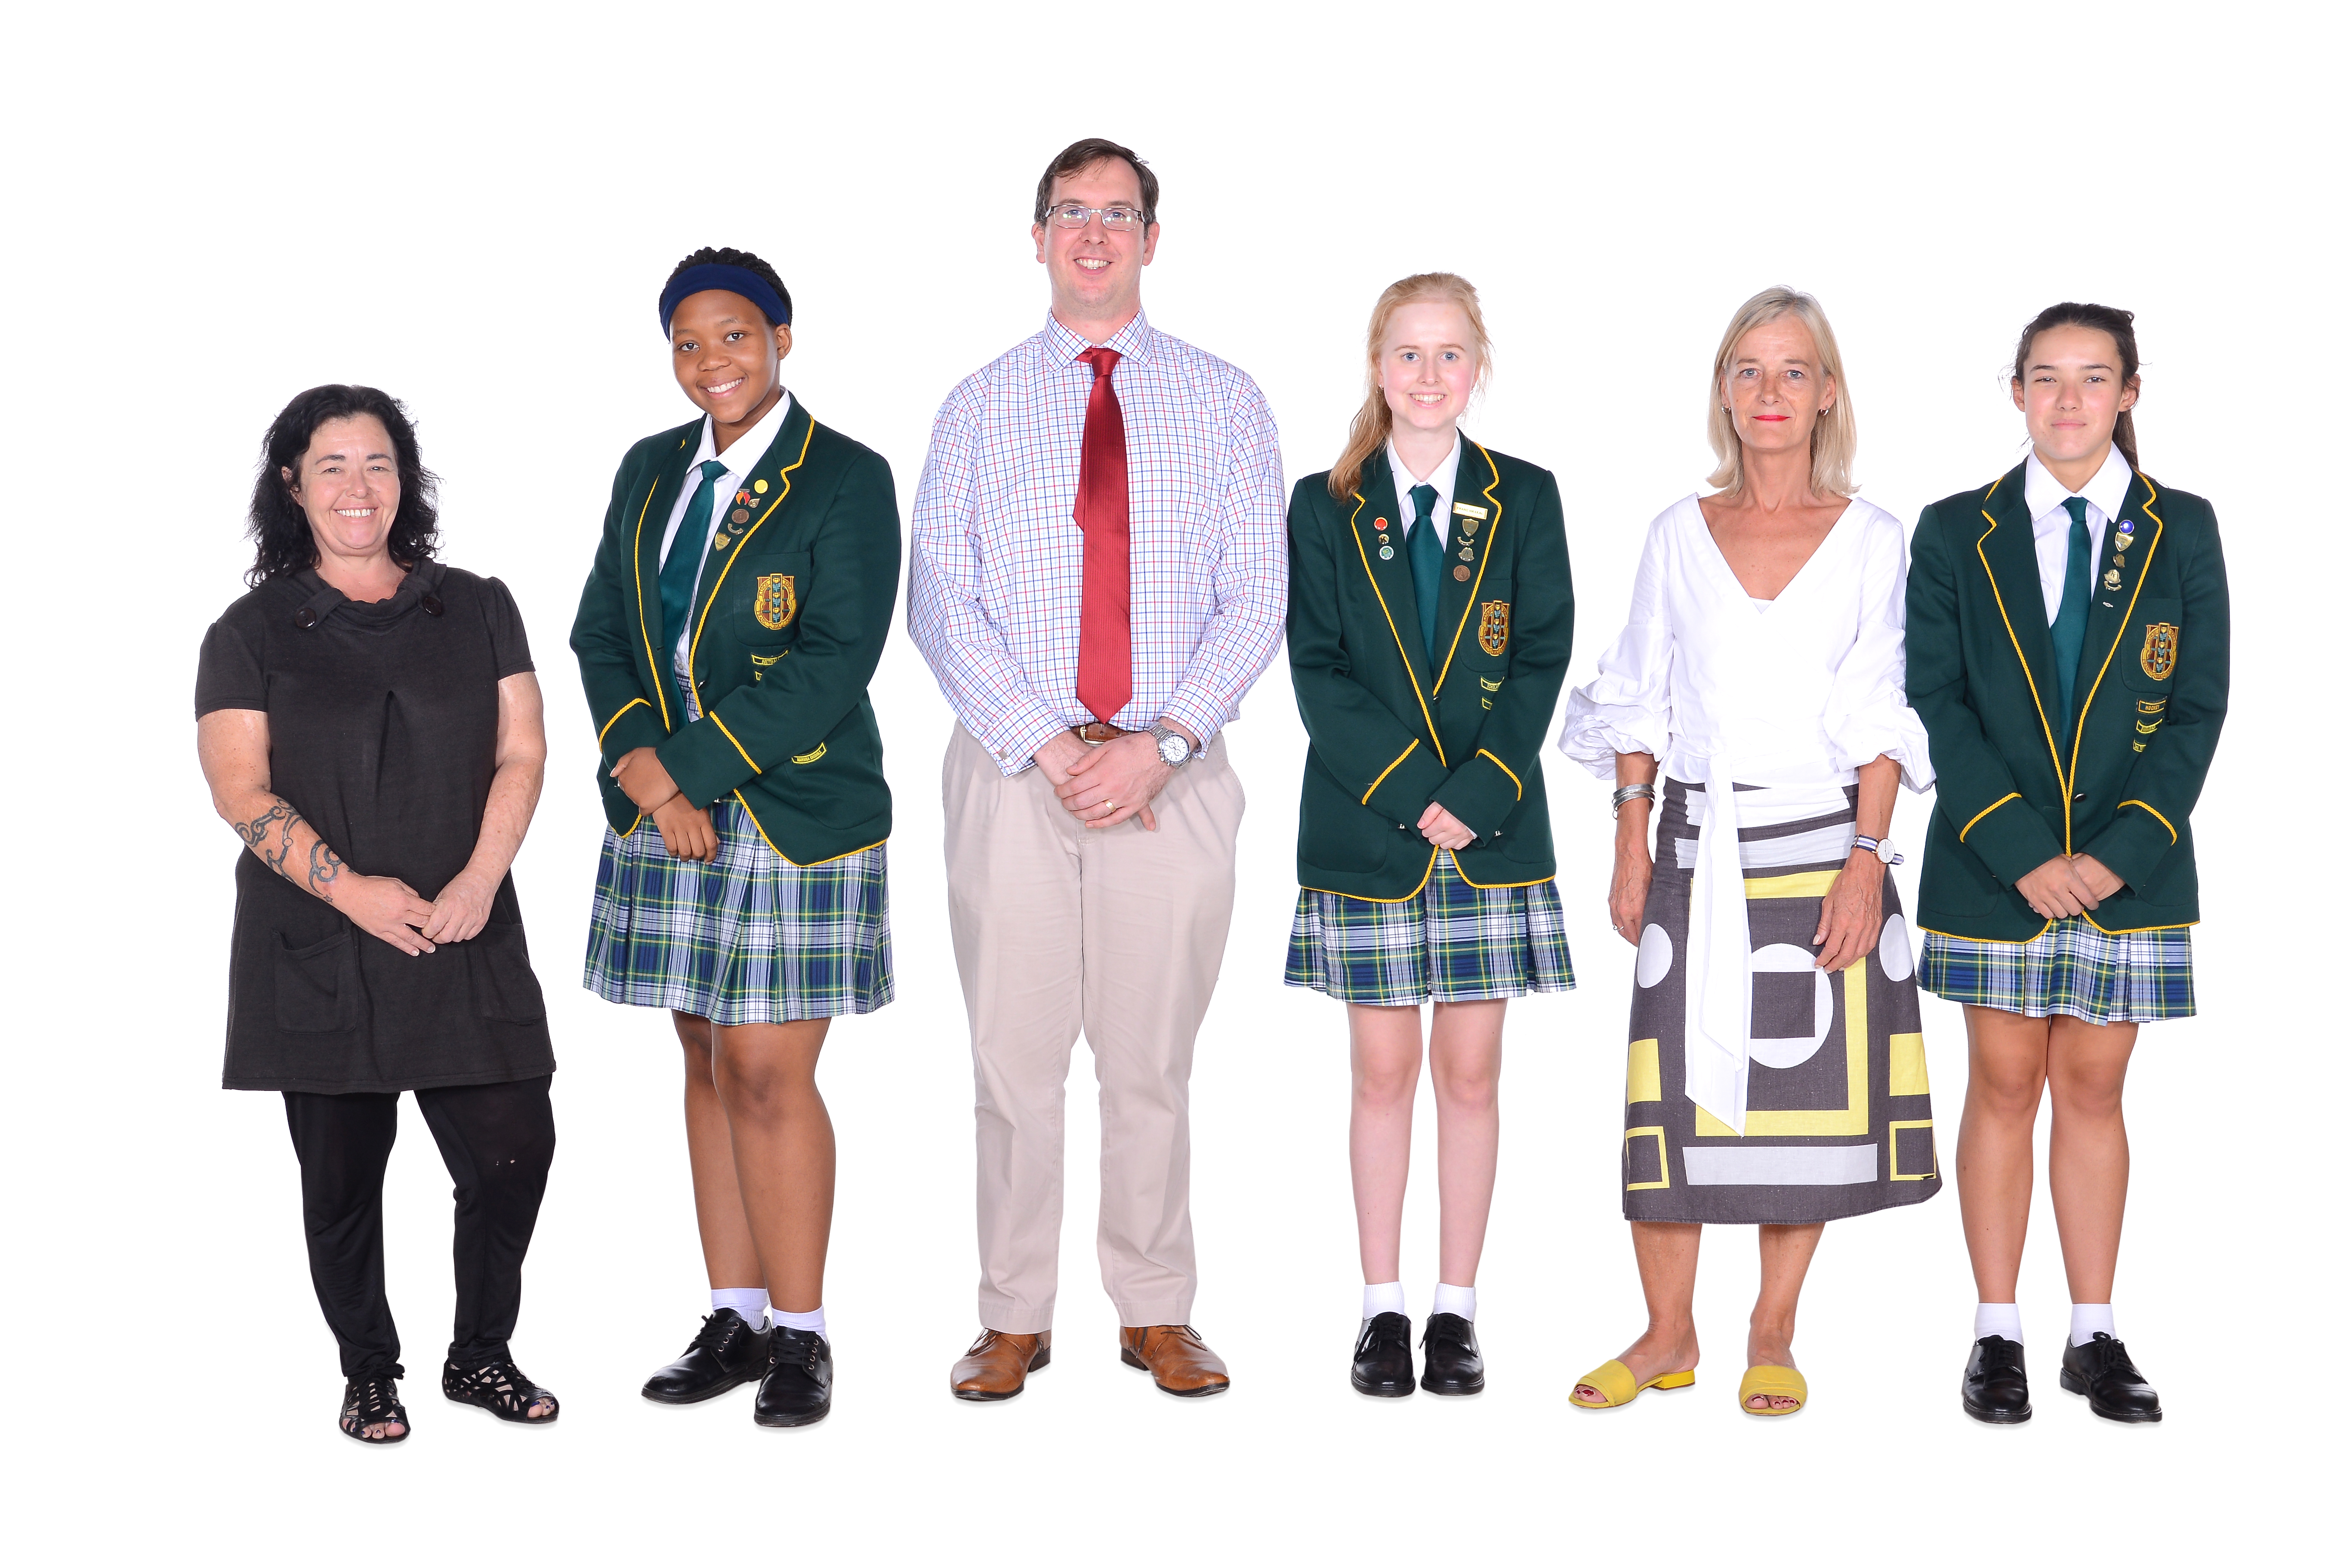 HEADS OF HOUSES Kingsmead College